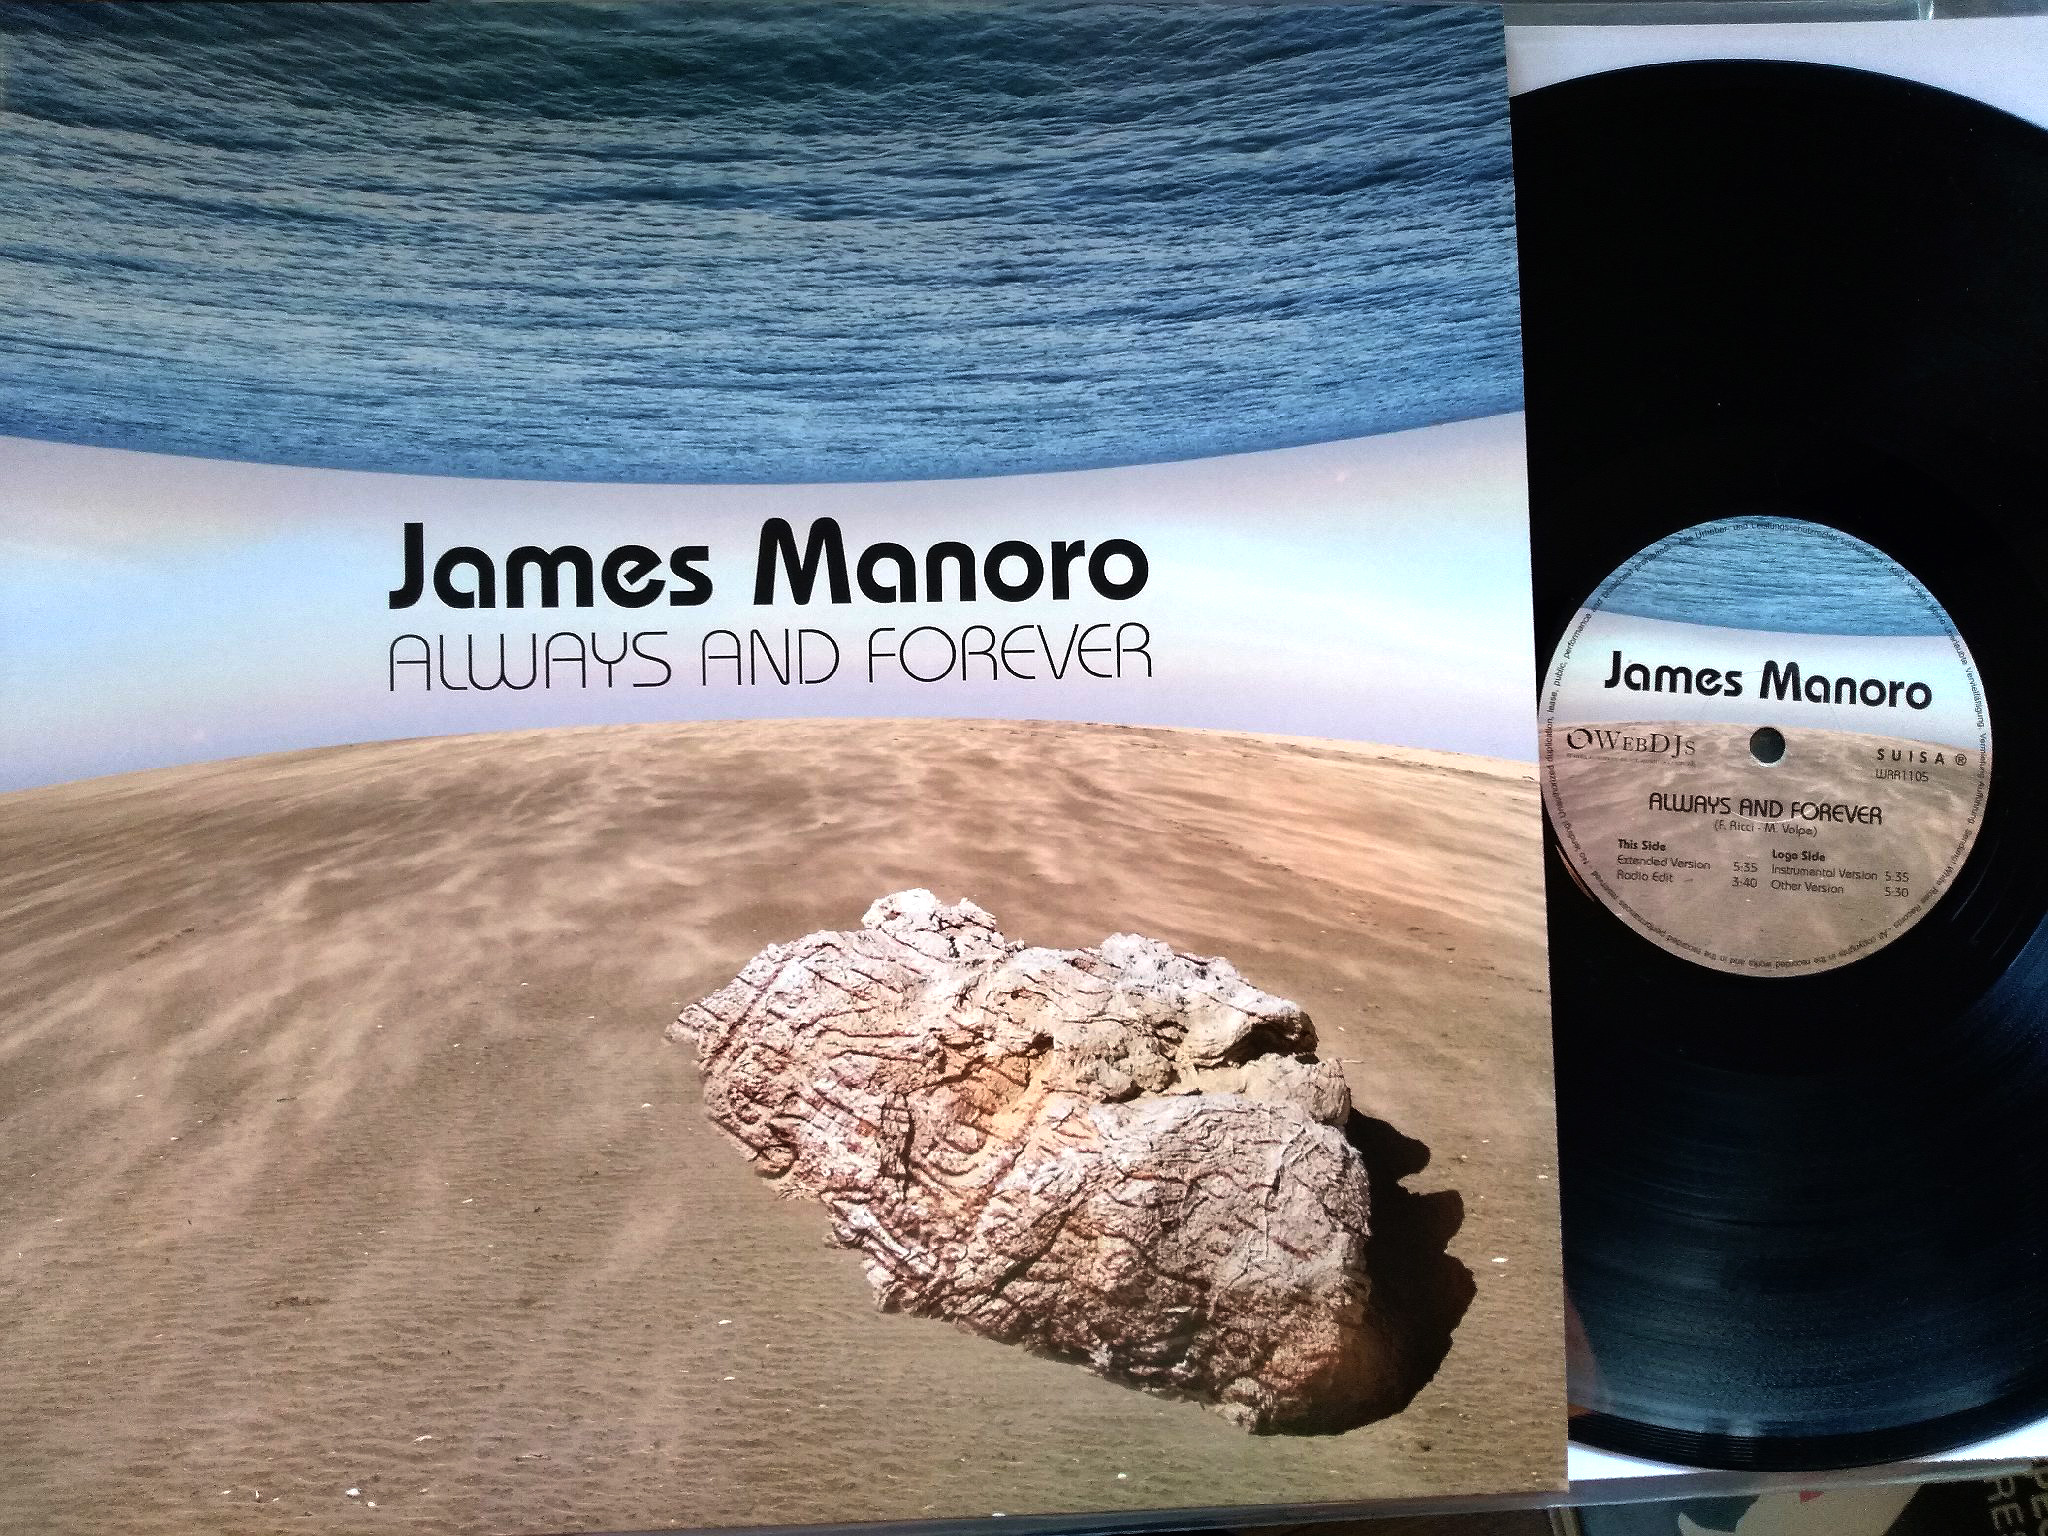 James Manoro - Always and Forever